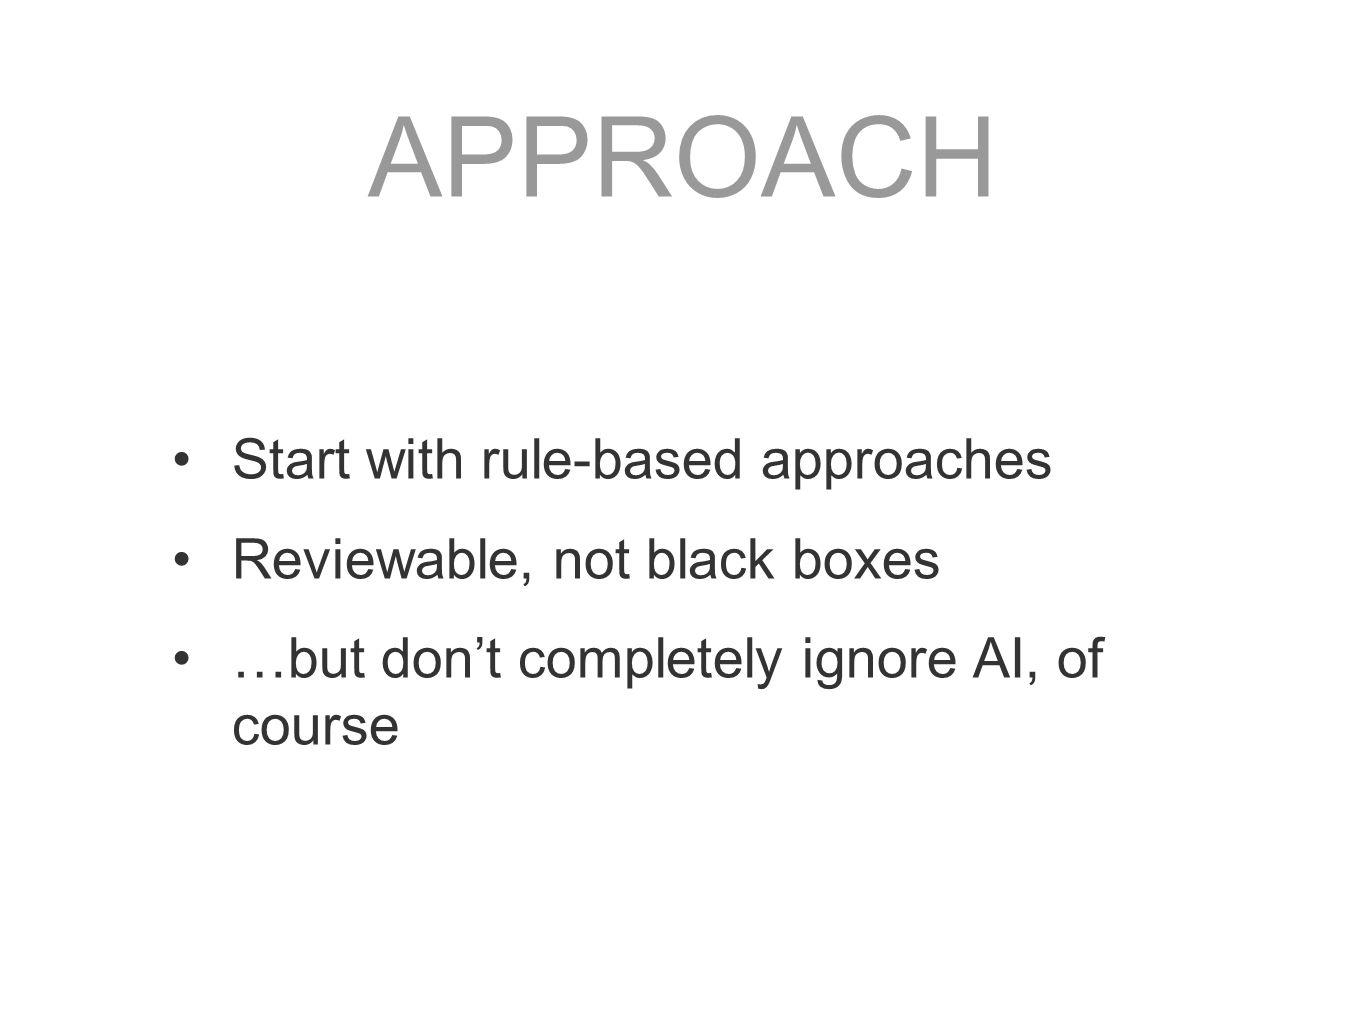 APPROACH Start with rule-based approaches Reviewable, not black boxes